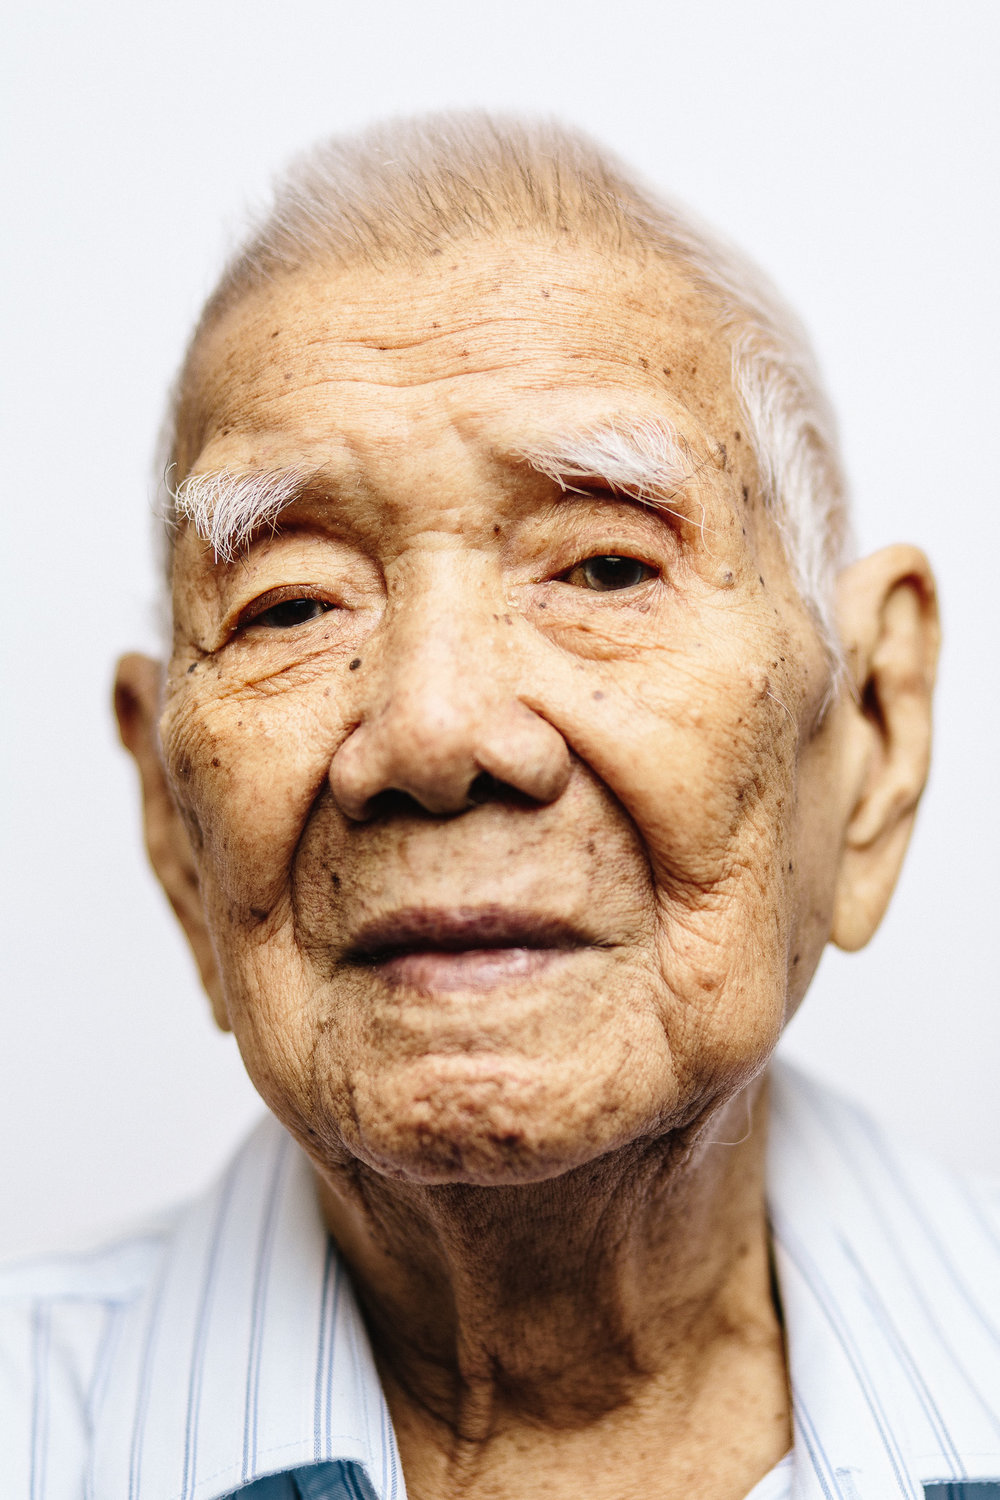 zainal-zainal-studio-centenarians-care-duke-nus-singapore-photographer-07.jpg